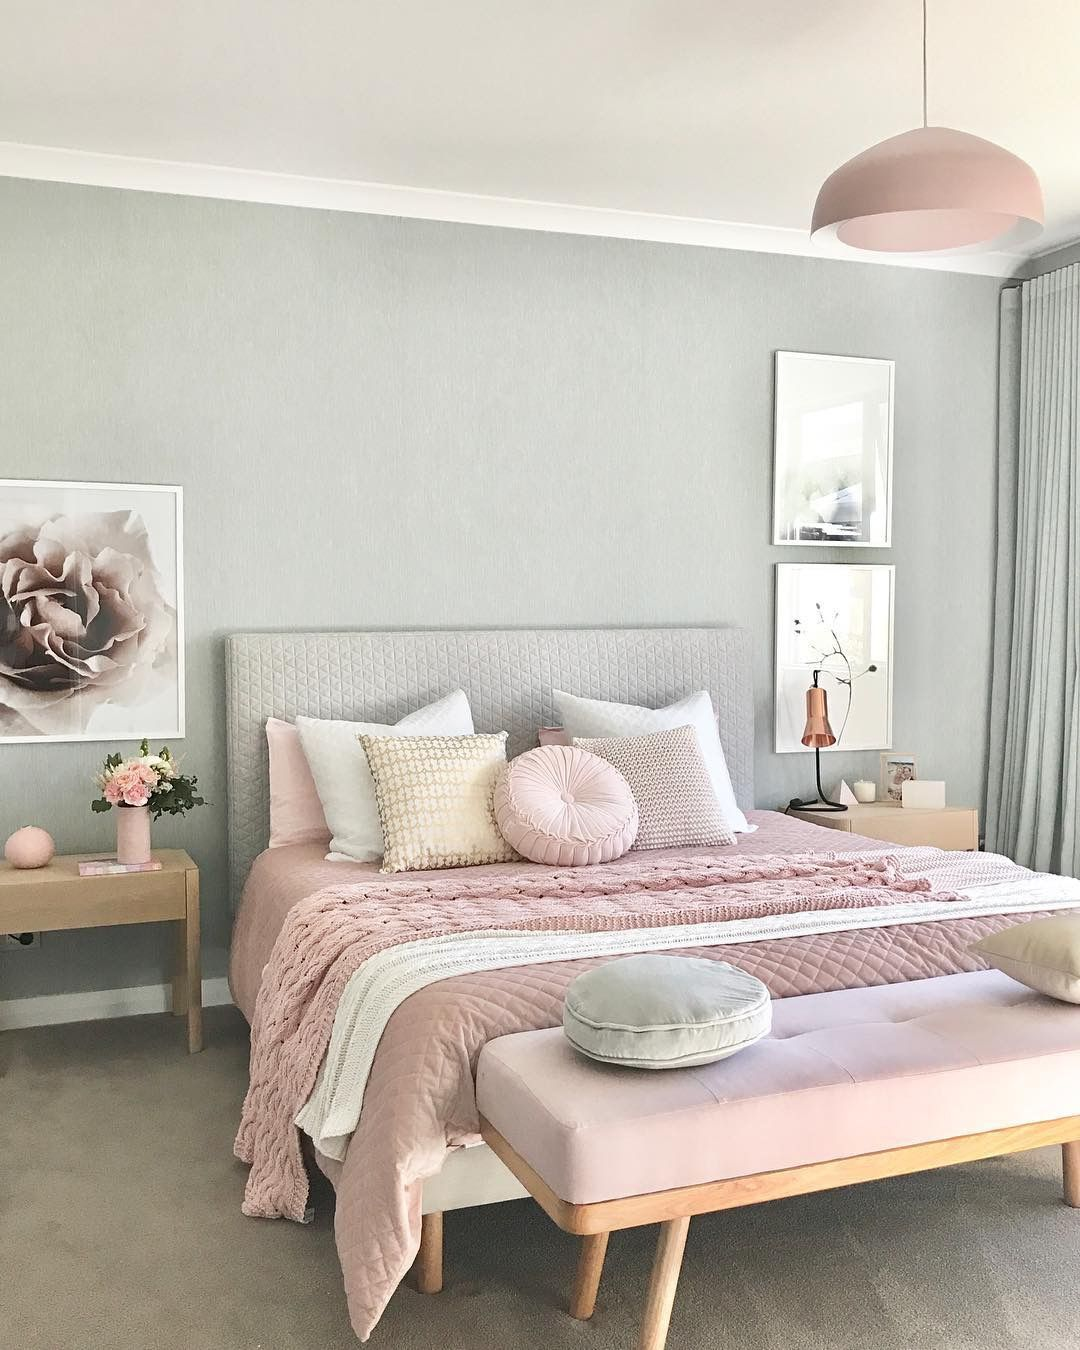 Pastel Colors Bedroom Ideas | www.indiepedia.org